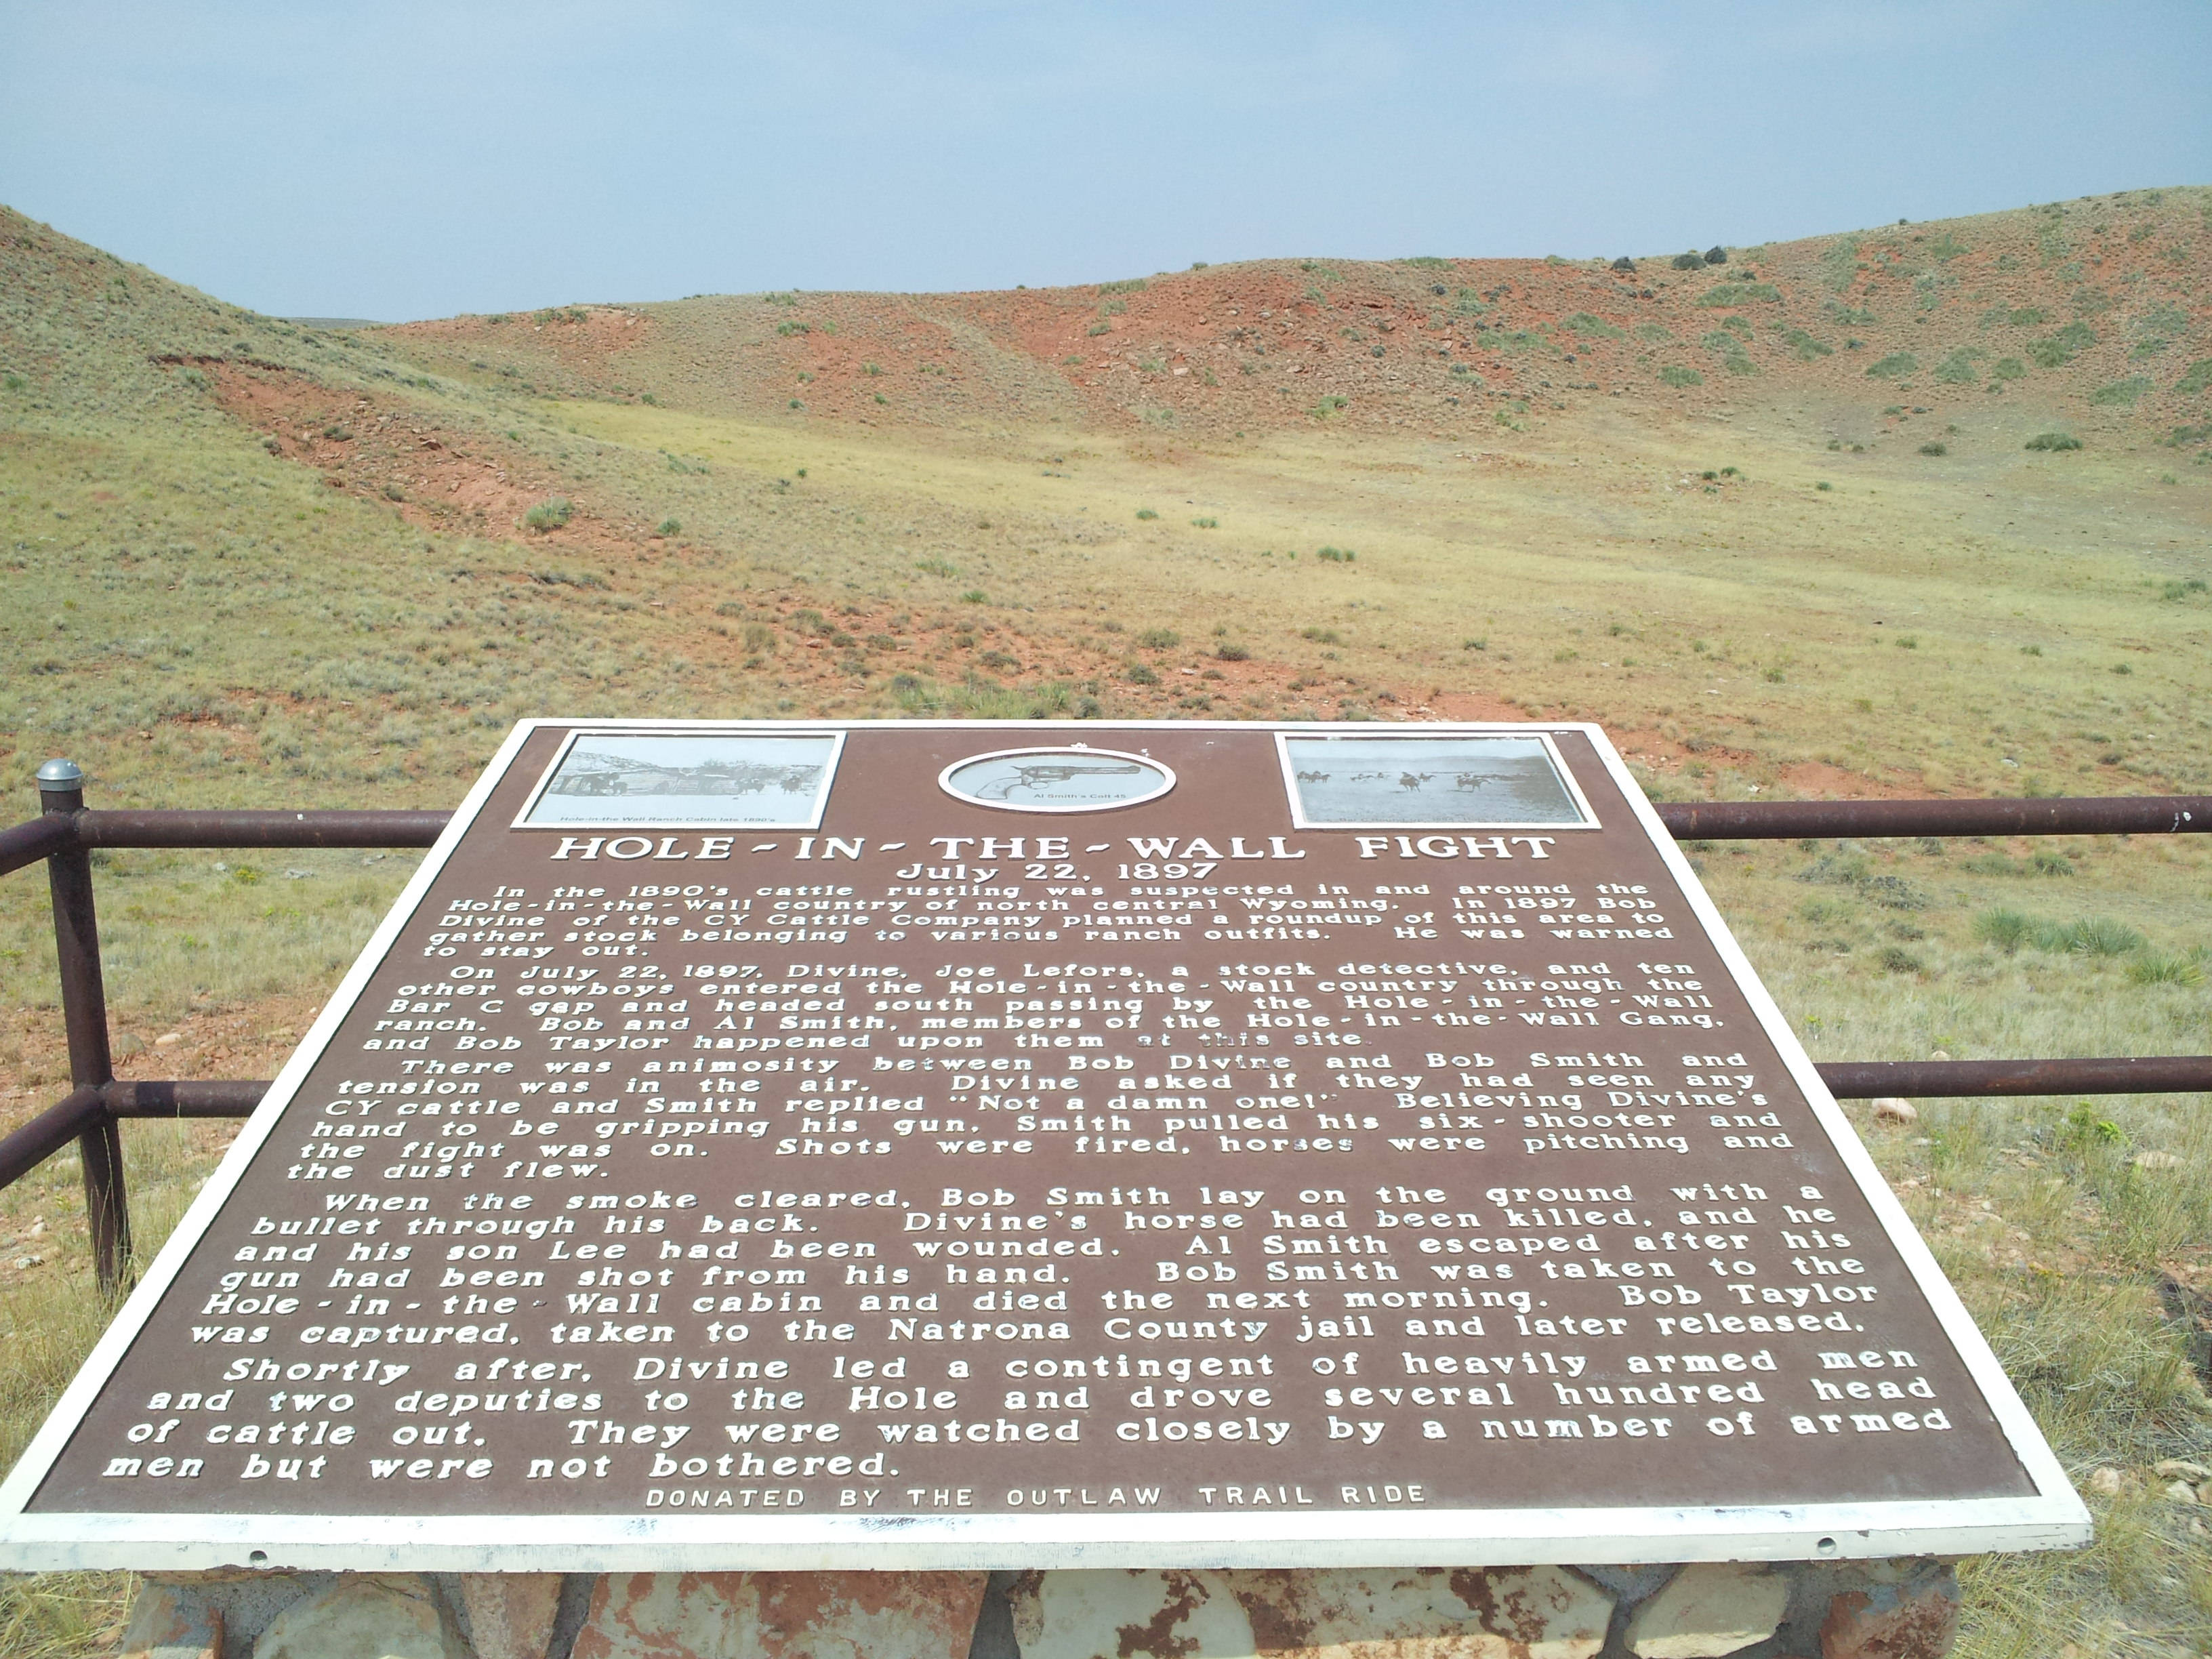 1000 images about historic markers trails on pinterest on hole in the wall id=85711